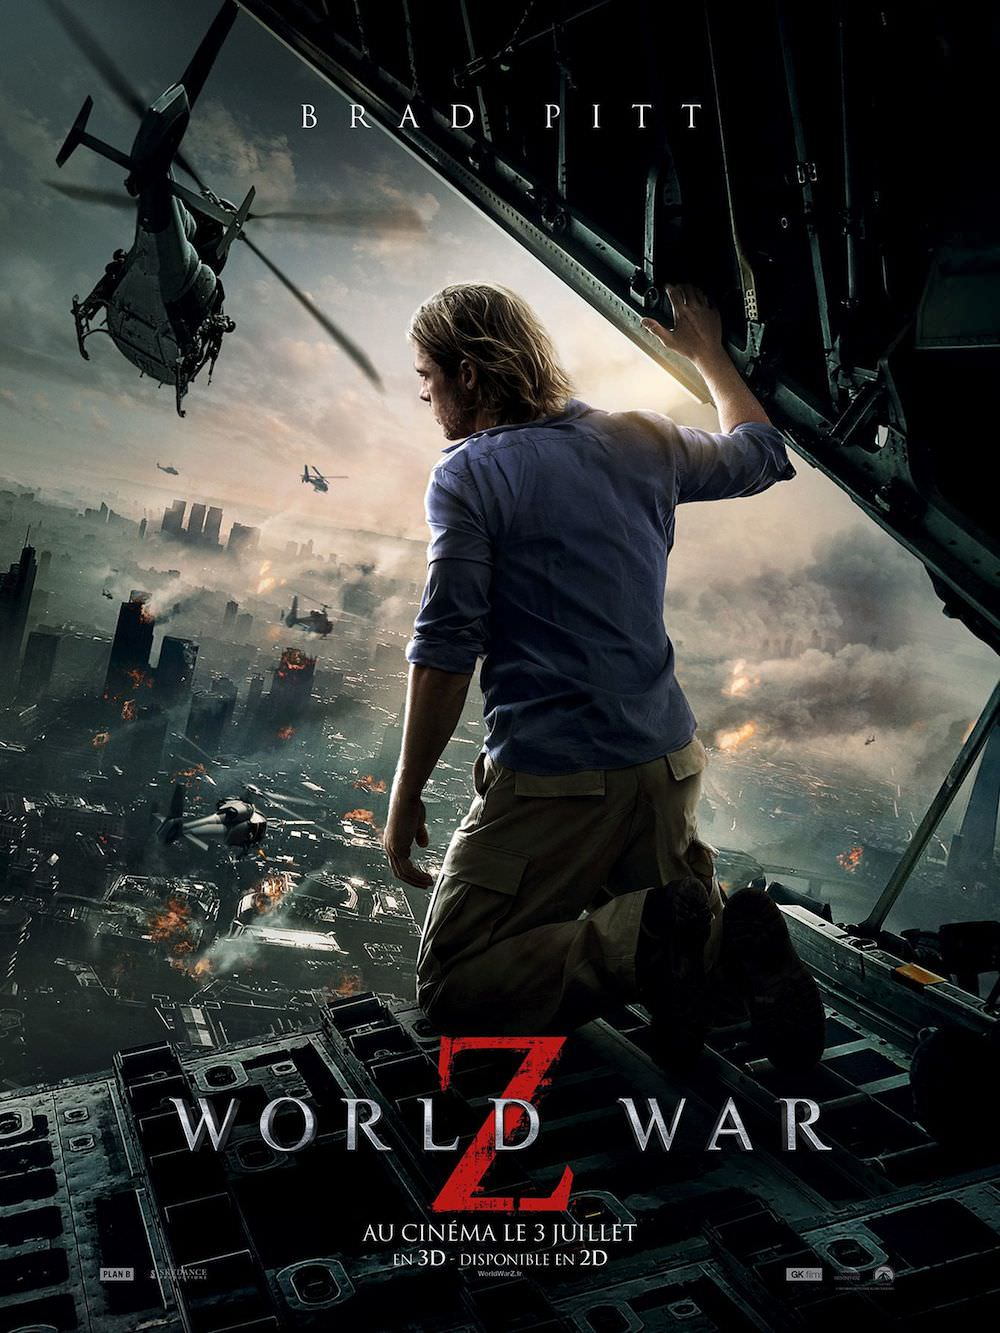 World war z brad pitt